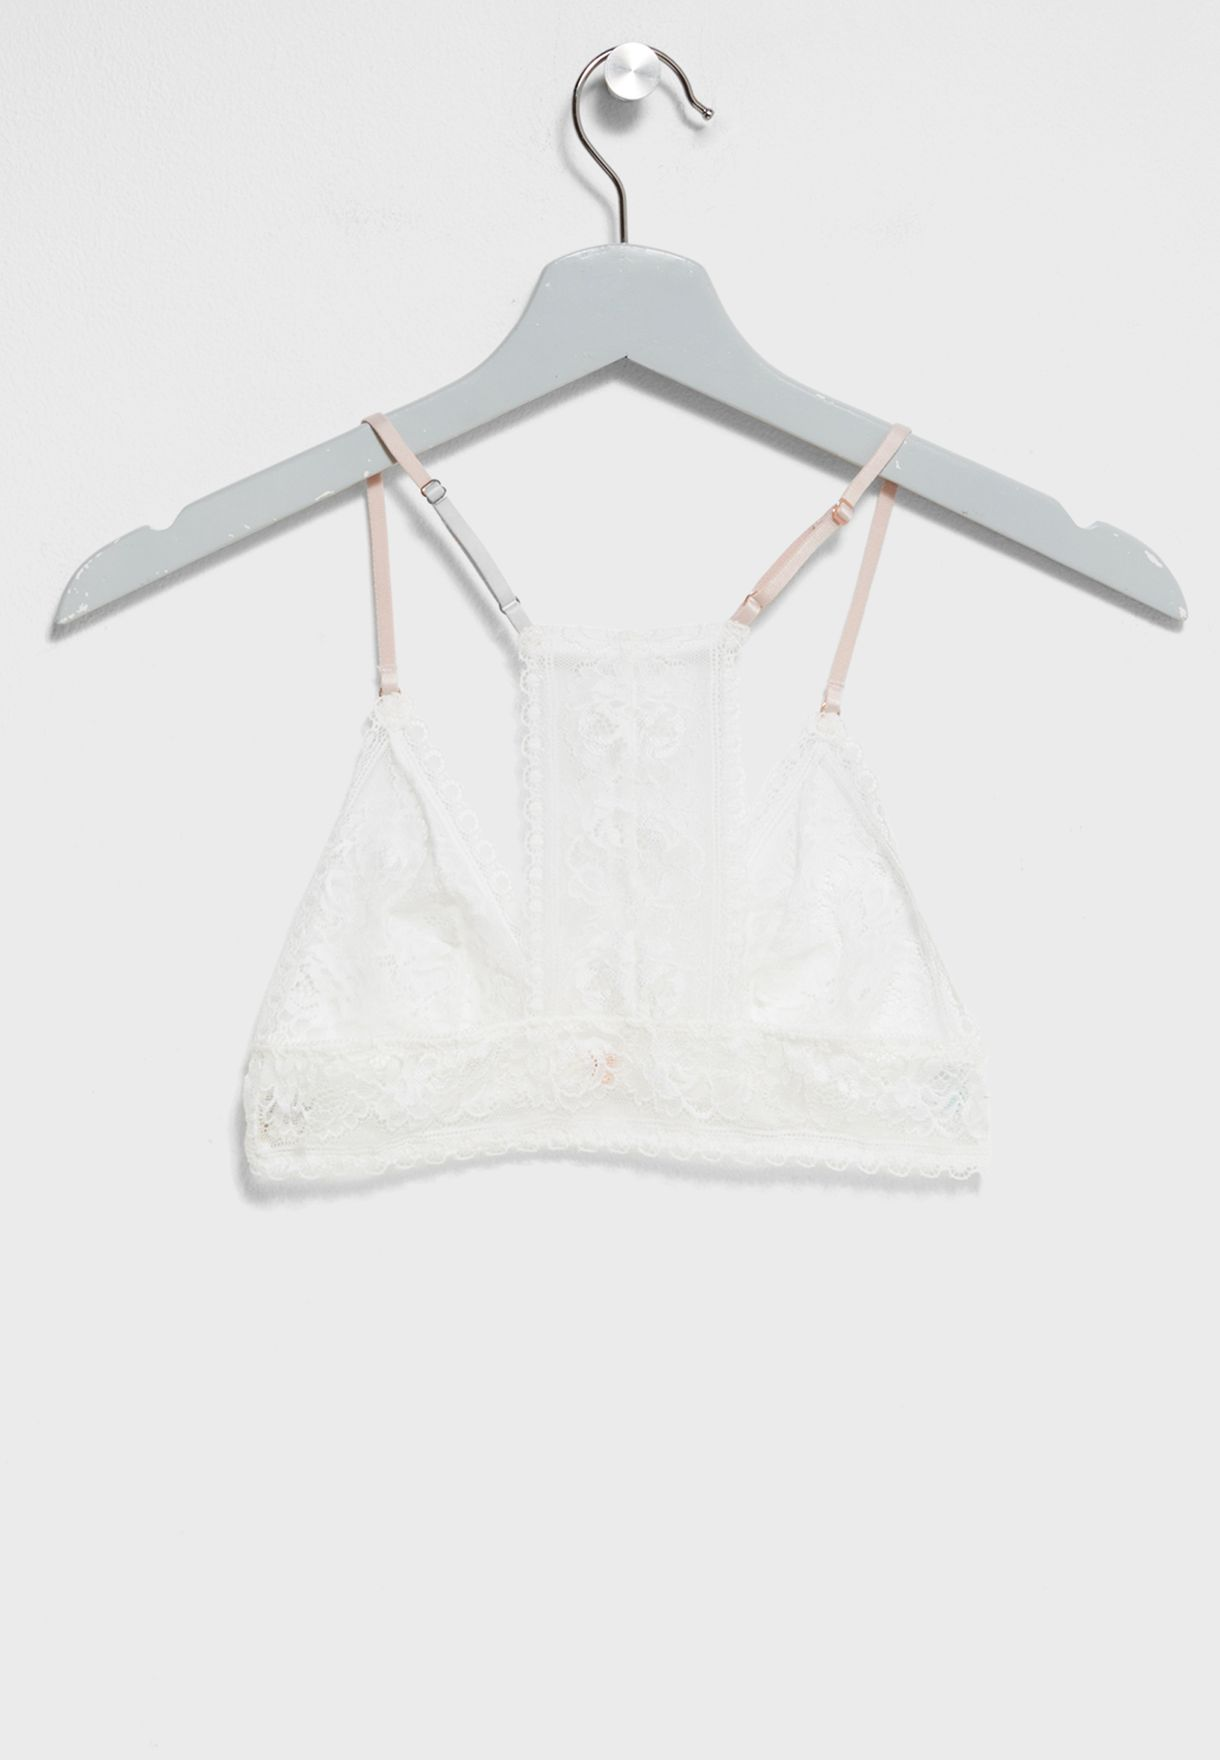 ee7728426c7dc Shop Topshop white Lace Triangle Bra 43T07MIVR for Women in ...